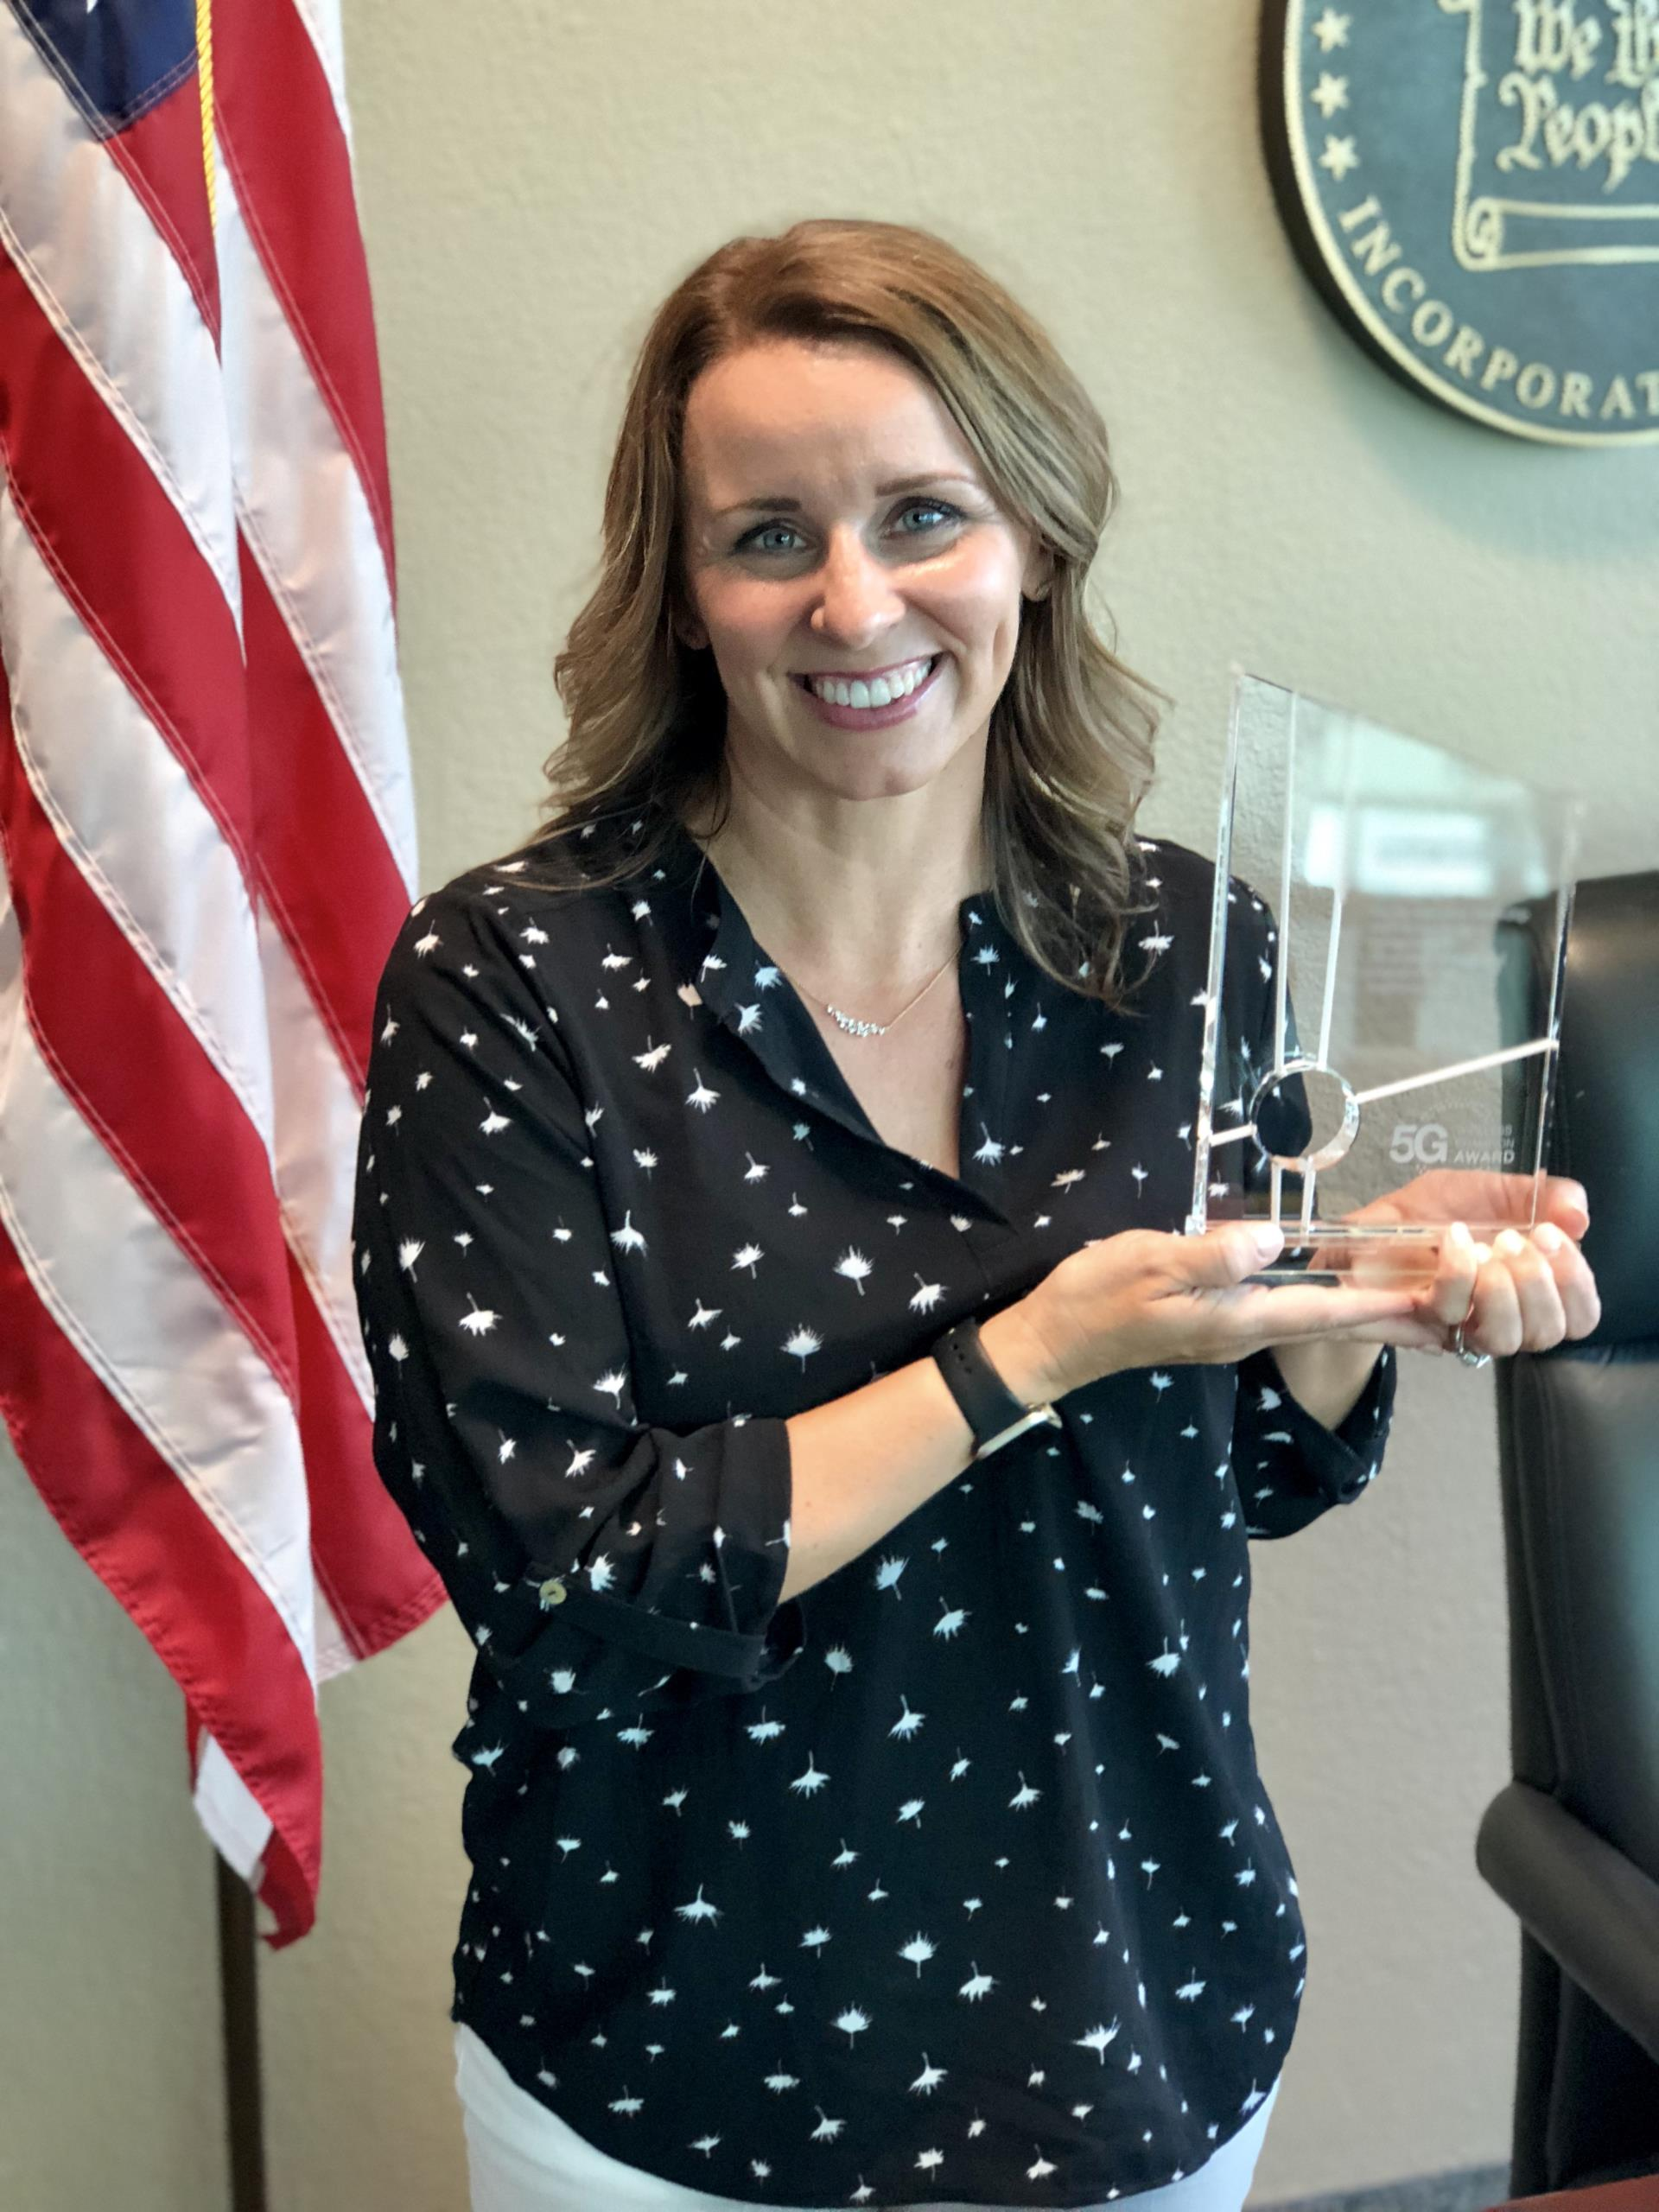 Mayor Daniels Receives 5G Award